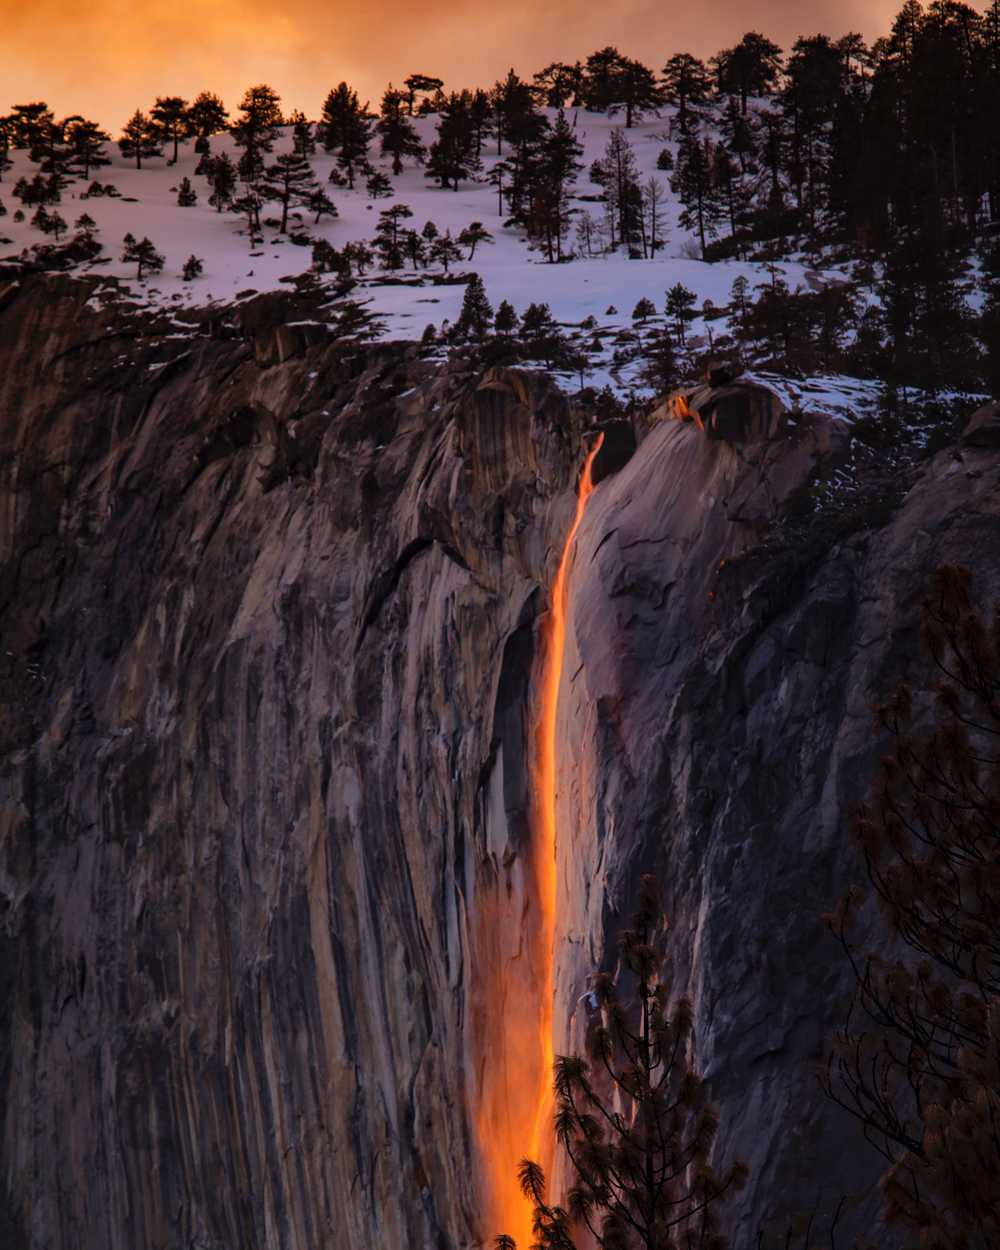 waterfalls near cliff at golden hour